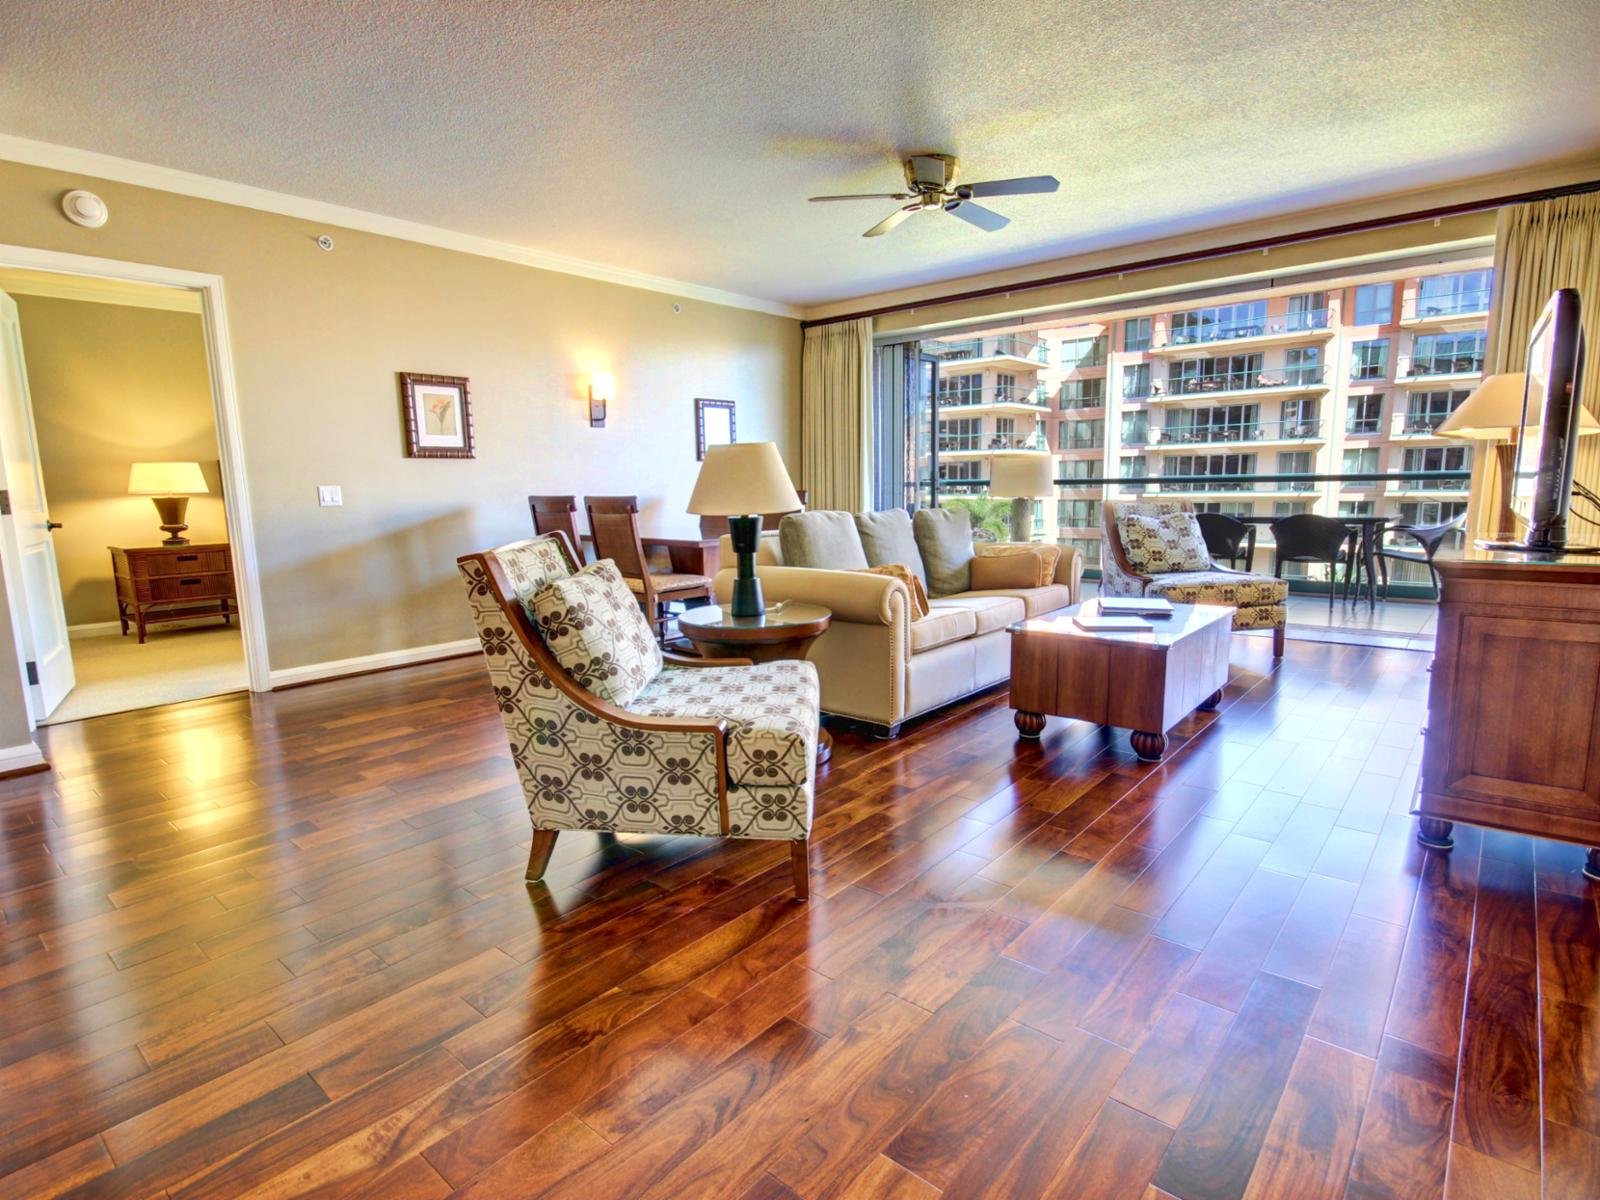 A beautiful well appointed living space with hardwood floors and queen sleeper sofa.